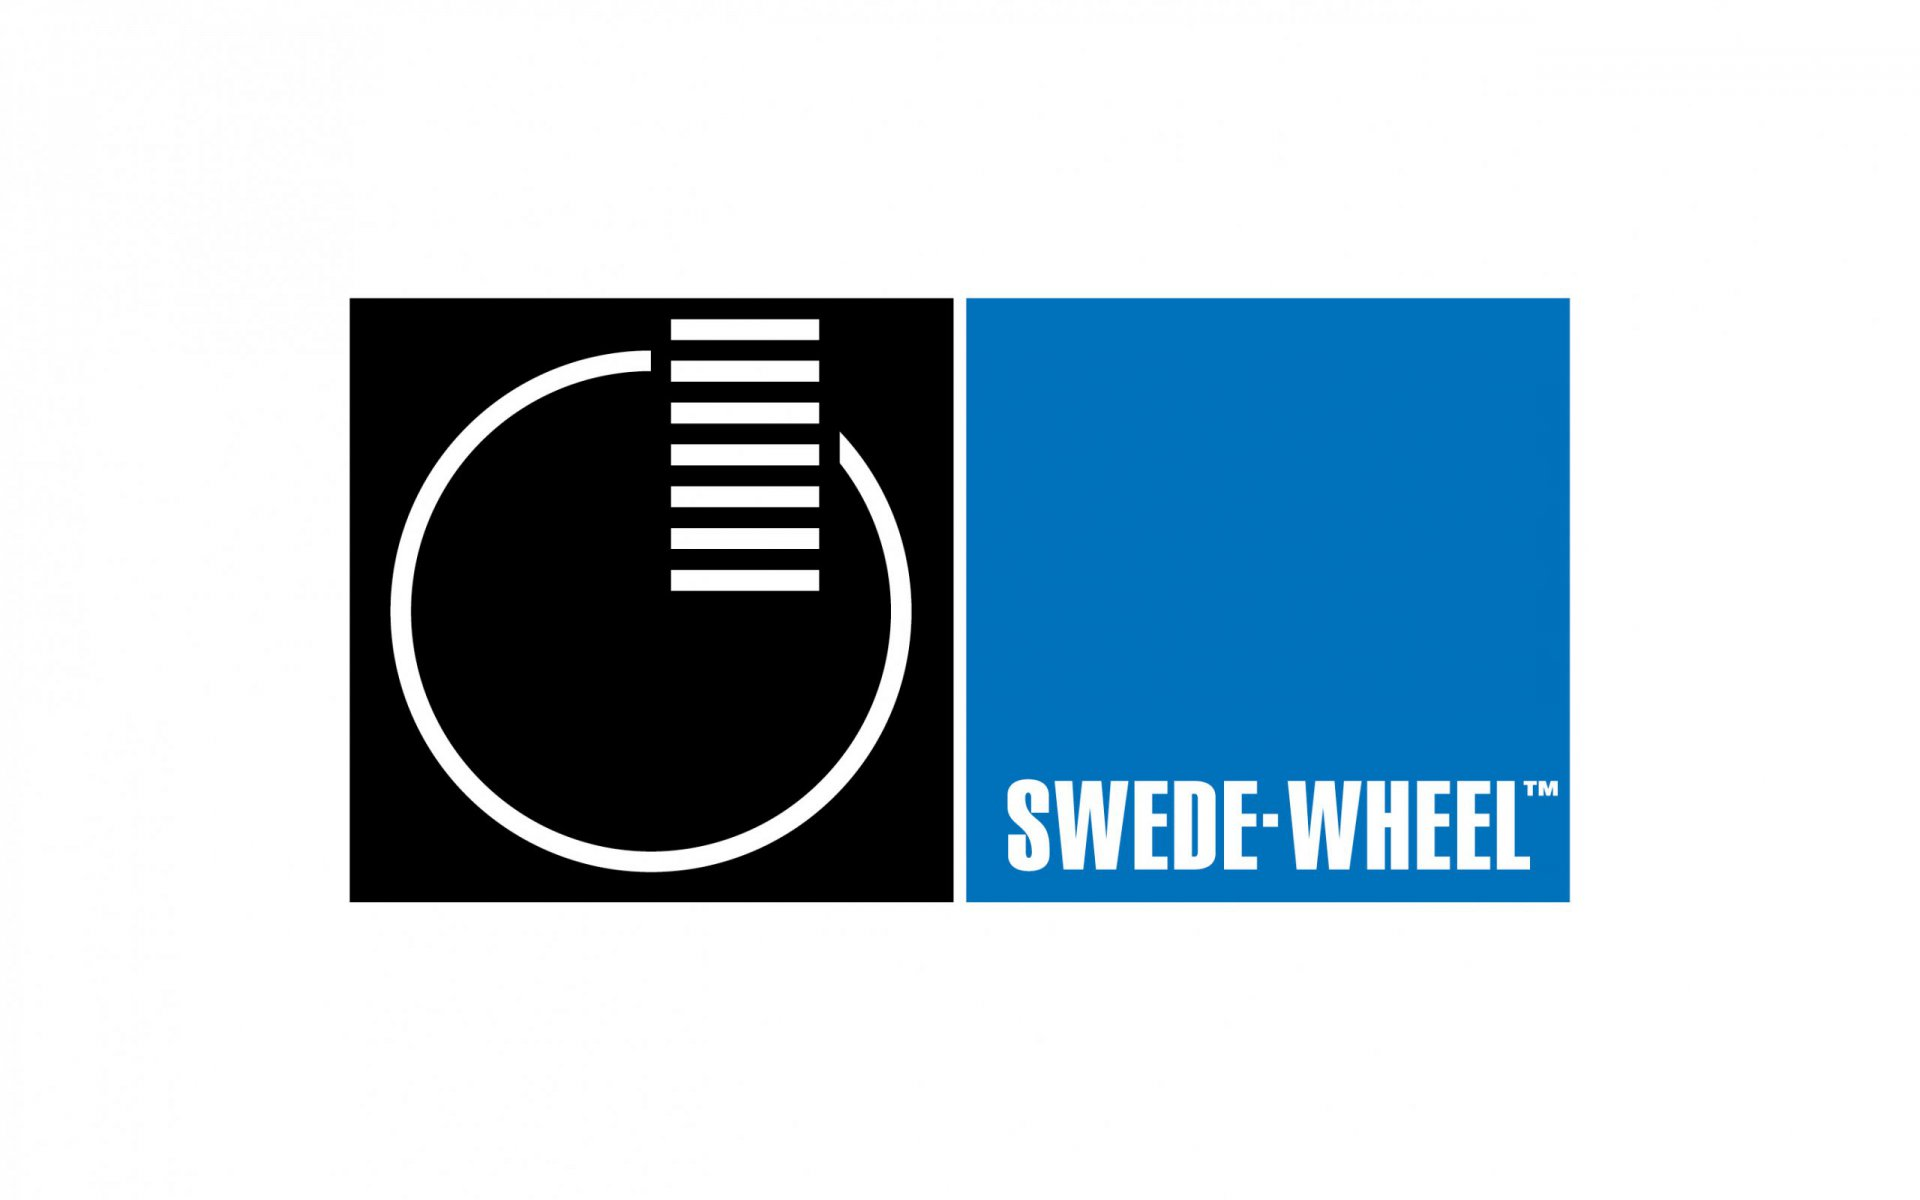 Swede-wheel-logotyp